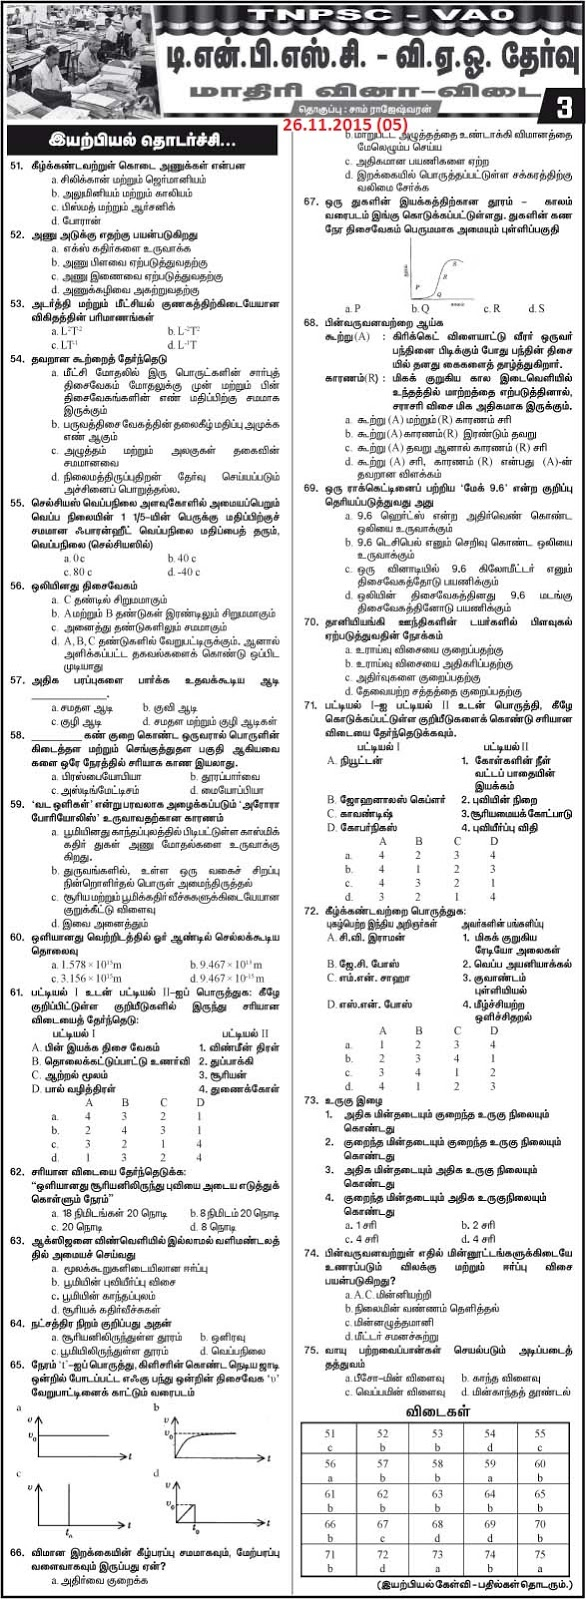 Model Questions and Answers for   TNPSC VAO Exam 2015  26.11.2015  Daily Thanthi Series (05)    [Download 2015 VAO 03]   Courtesy : Daily Thanthi